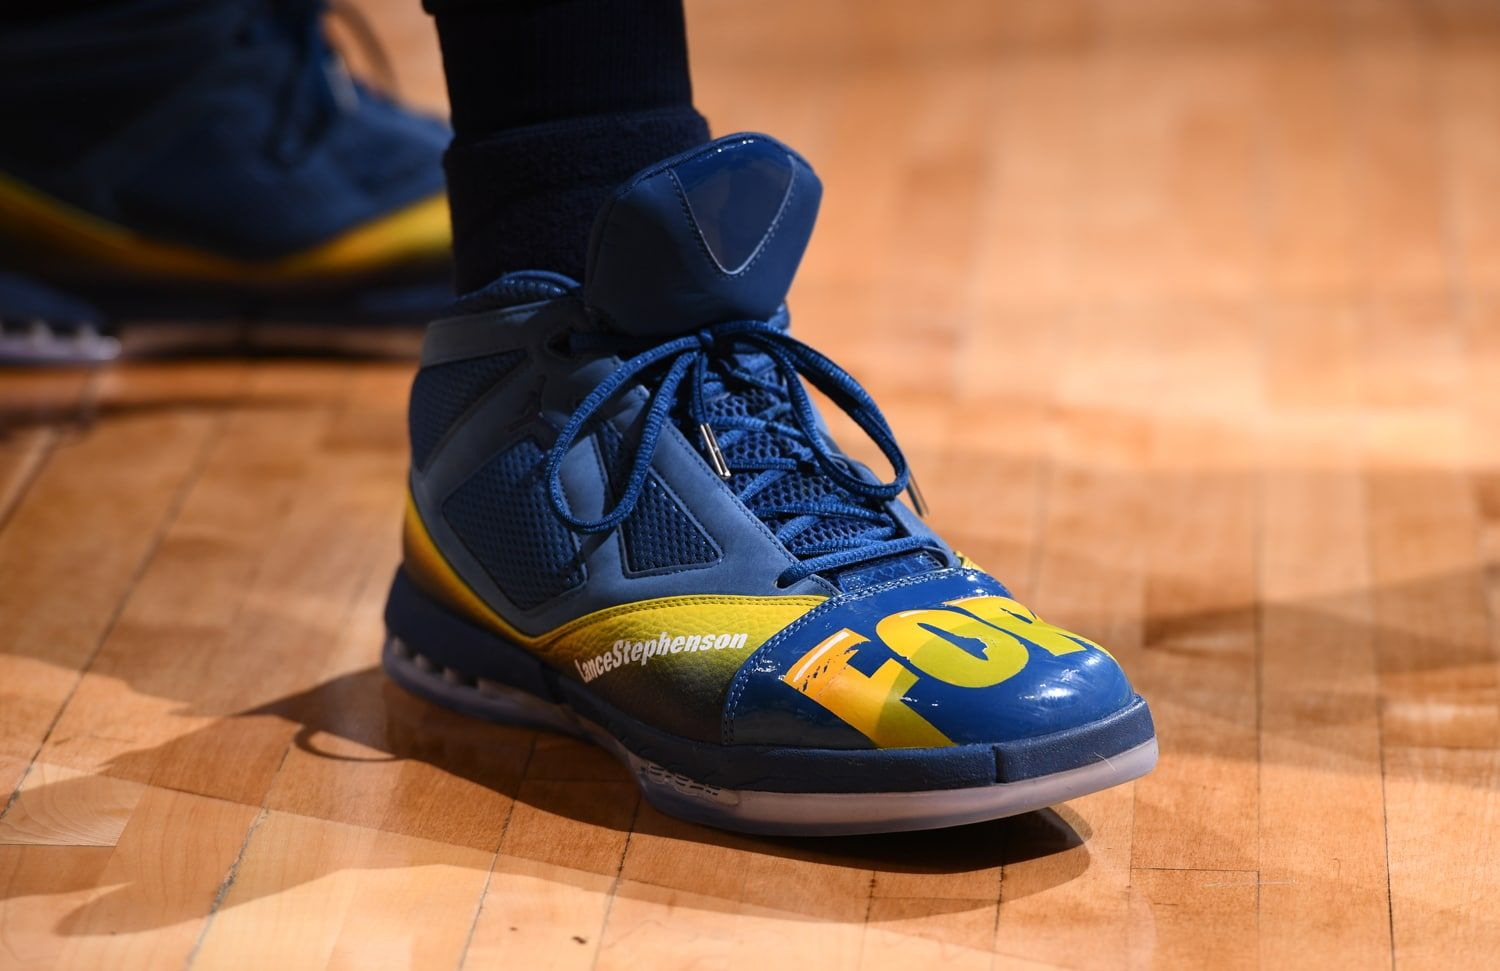 "Molestia Injerto Discriminación  The Trophy Room x Air Jordan XVI Retro in the ""Fortnite"" Lance Stephenson  PE colorway! 